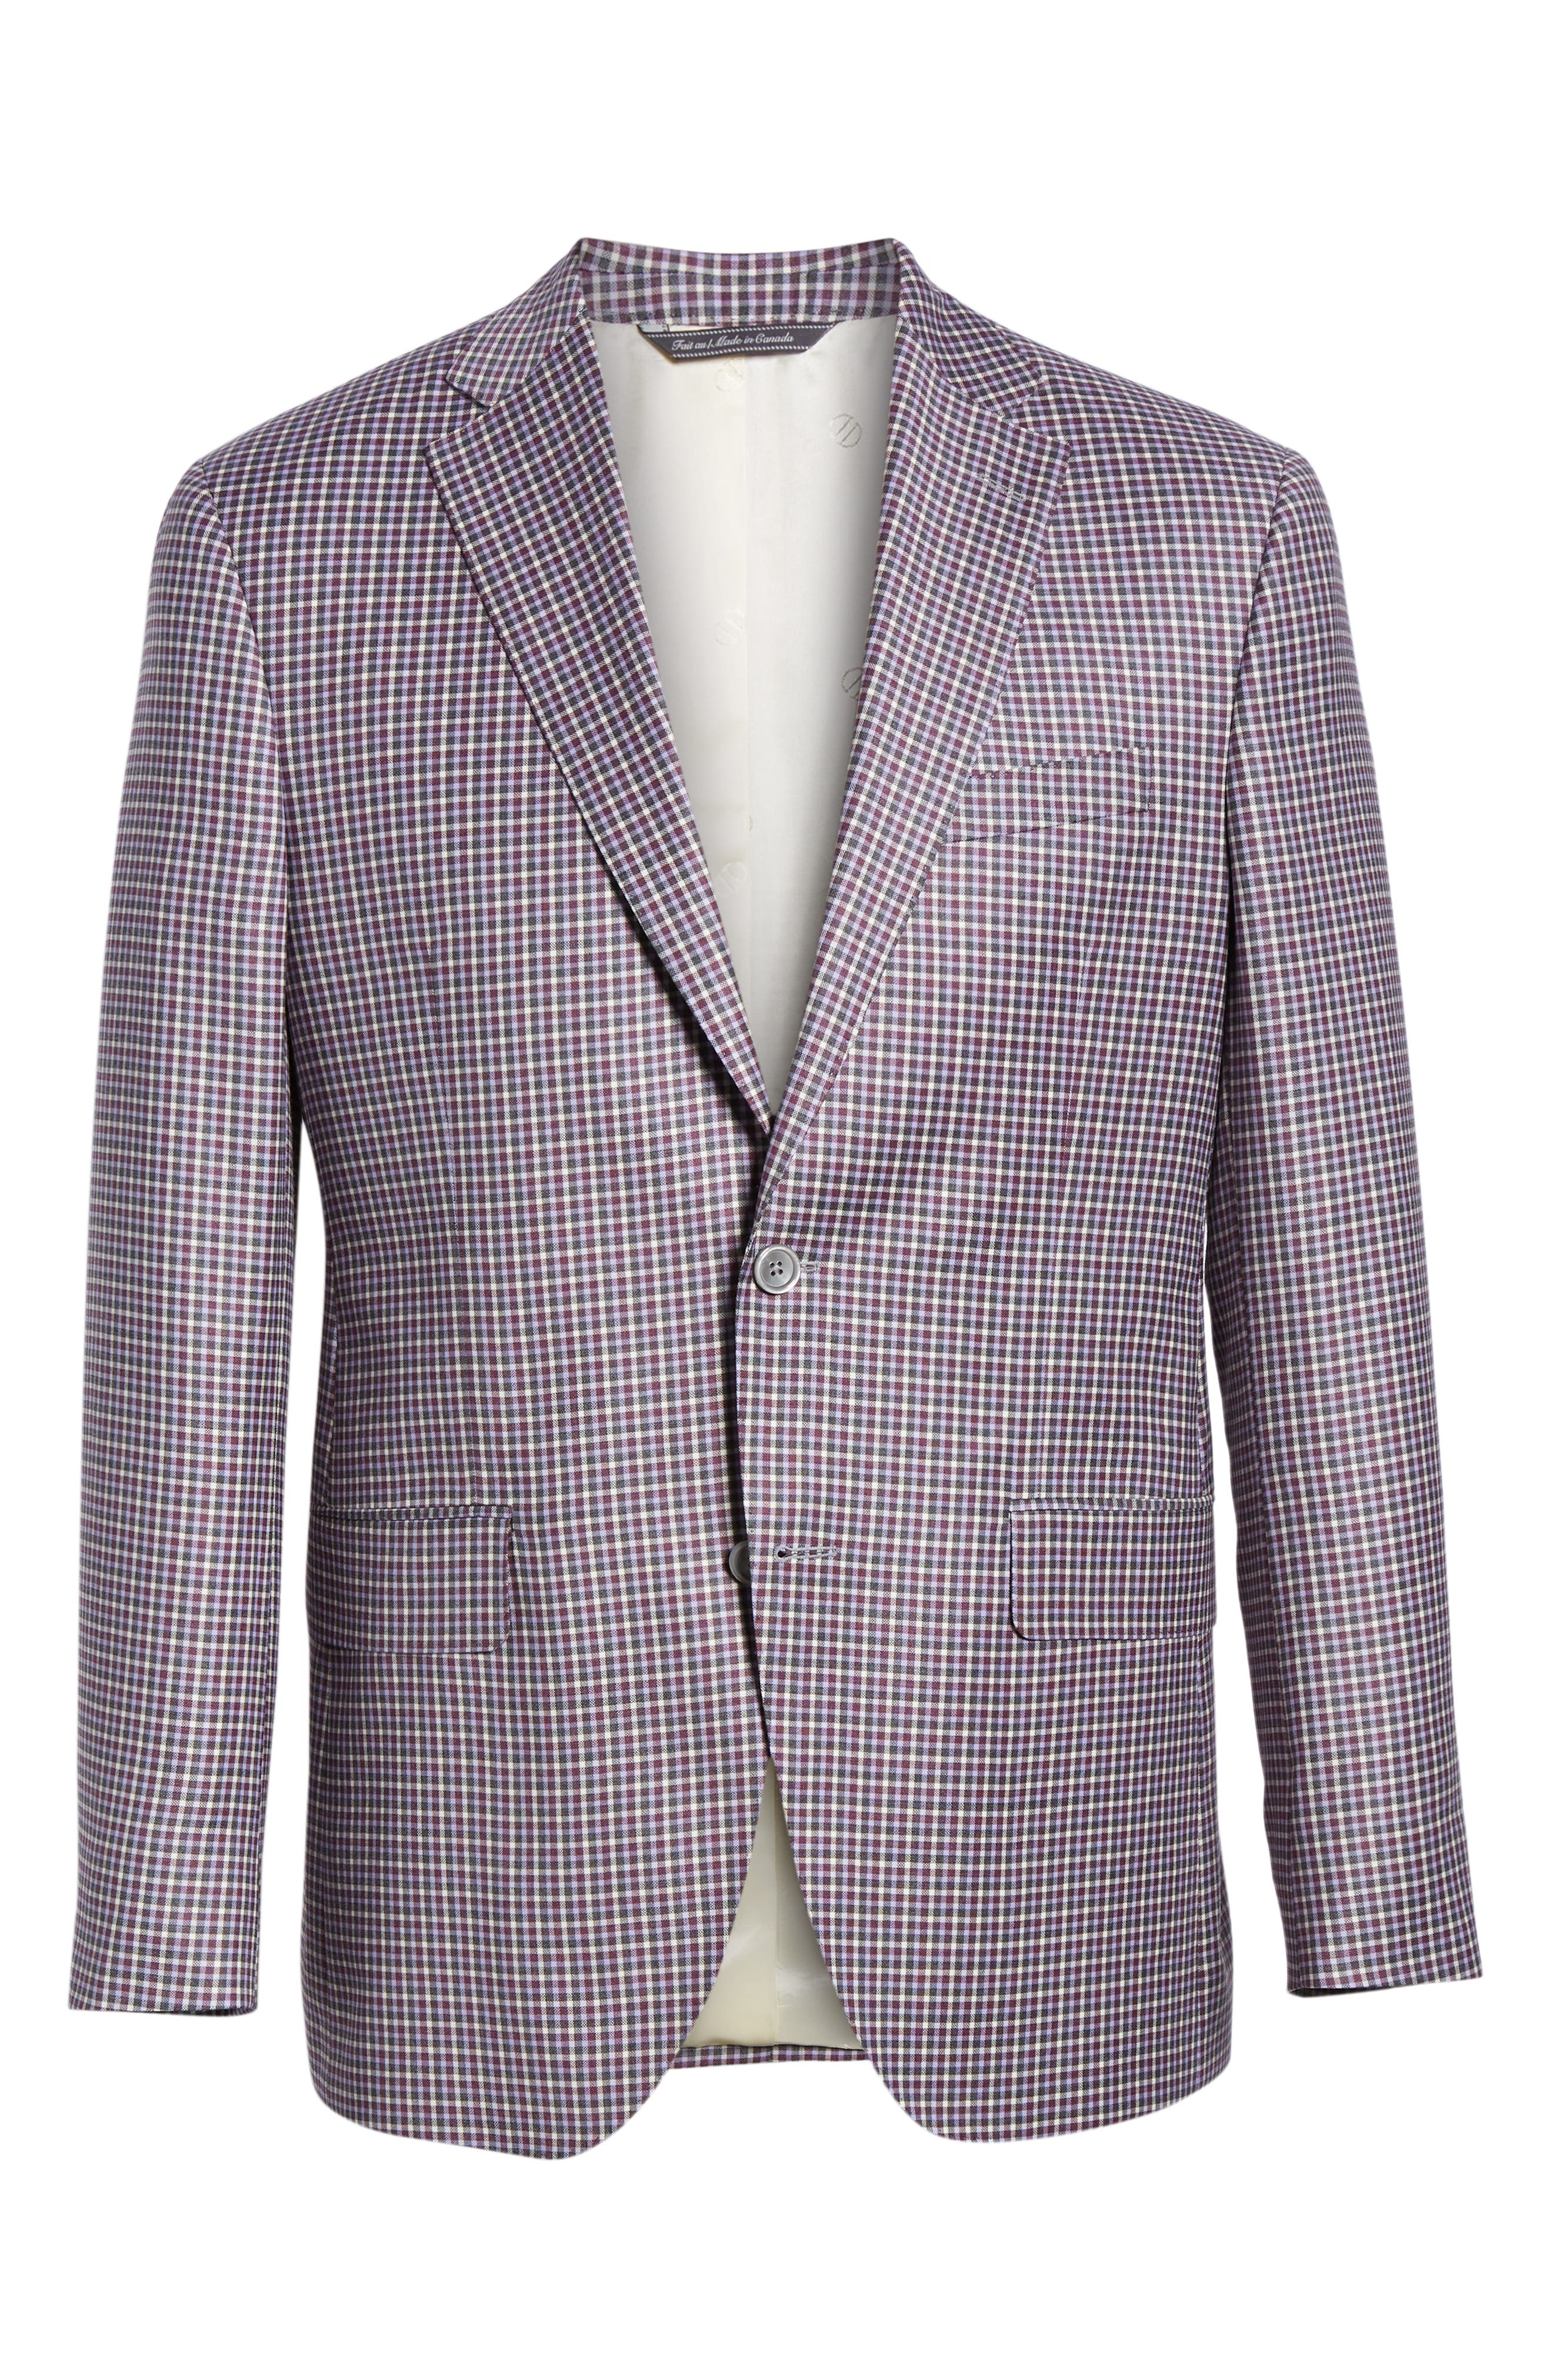 Connor Classic Fit Check Wool Sport Coat,                             Alternate thumbnail 5, color,                             BERRY